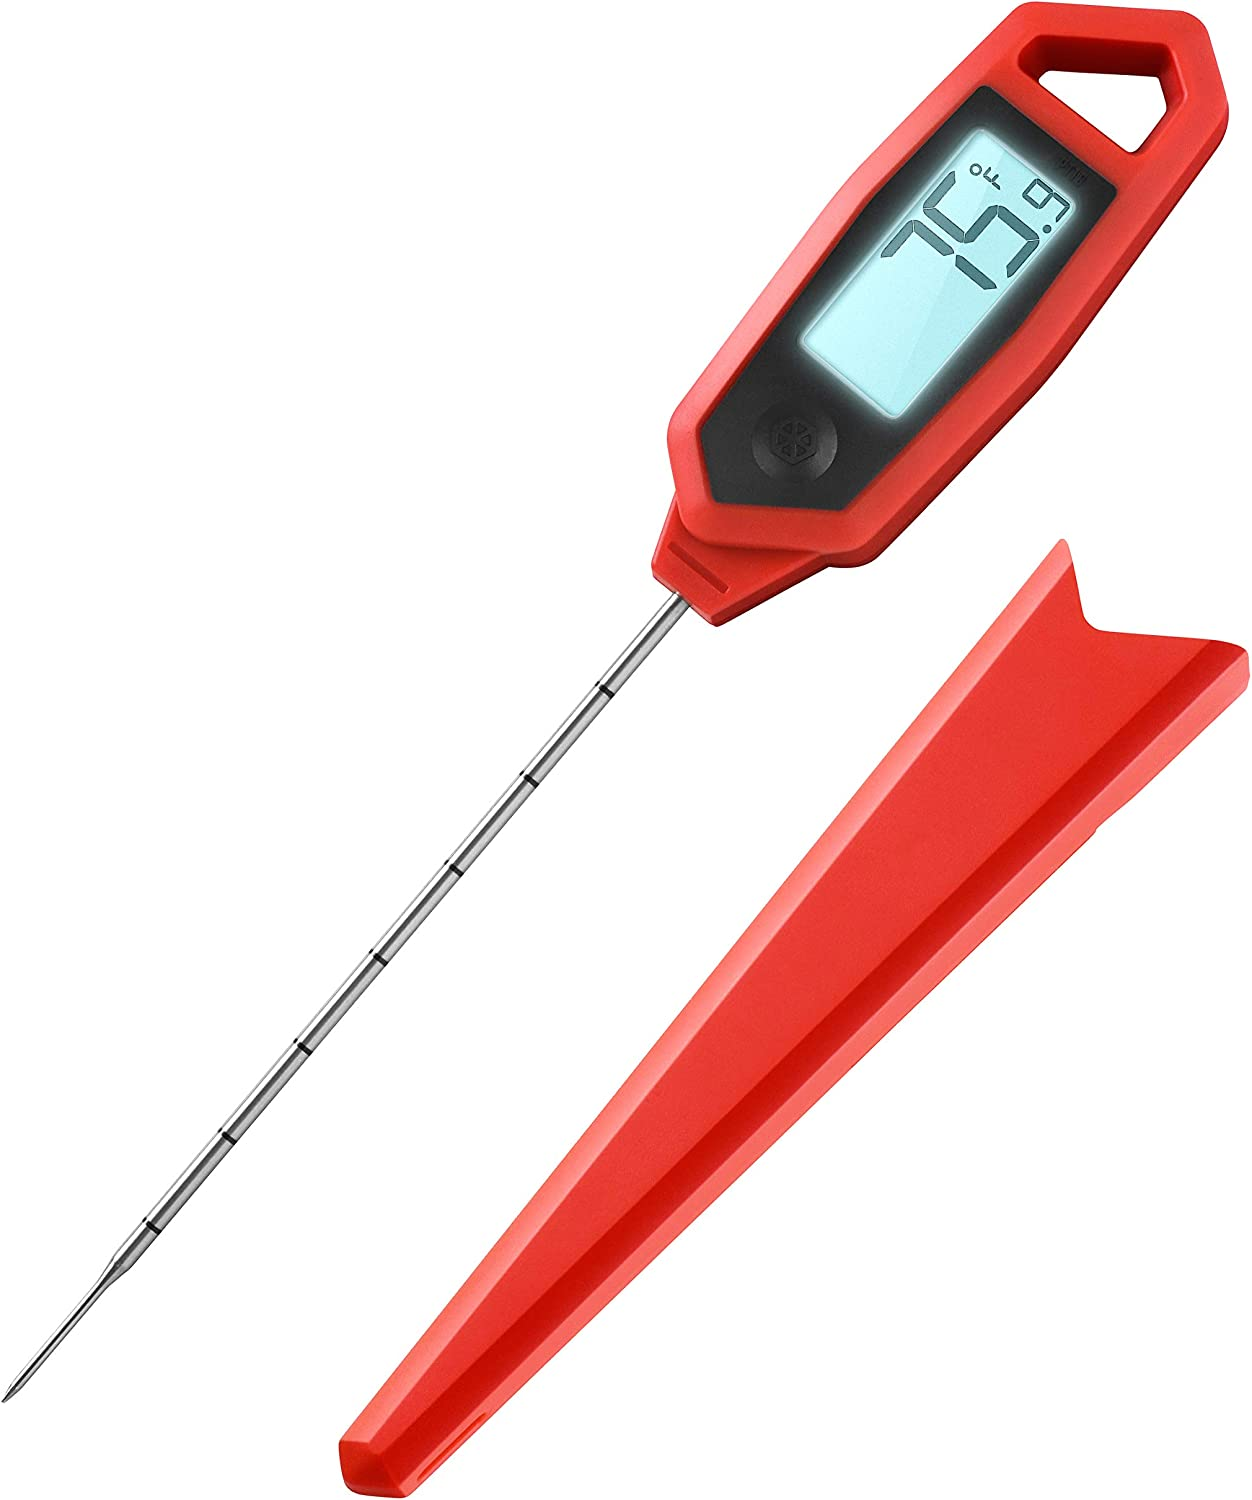 "Lavatools PT18 Professional Commercial 4.5"" Ambidextrous Backlit Digital Instant Read Meat Thermometer for Kitchen, Food Cooking, Grill, BBQ, Smoker, Candy, Home Brewing, and Oil Deep Frying"